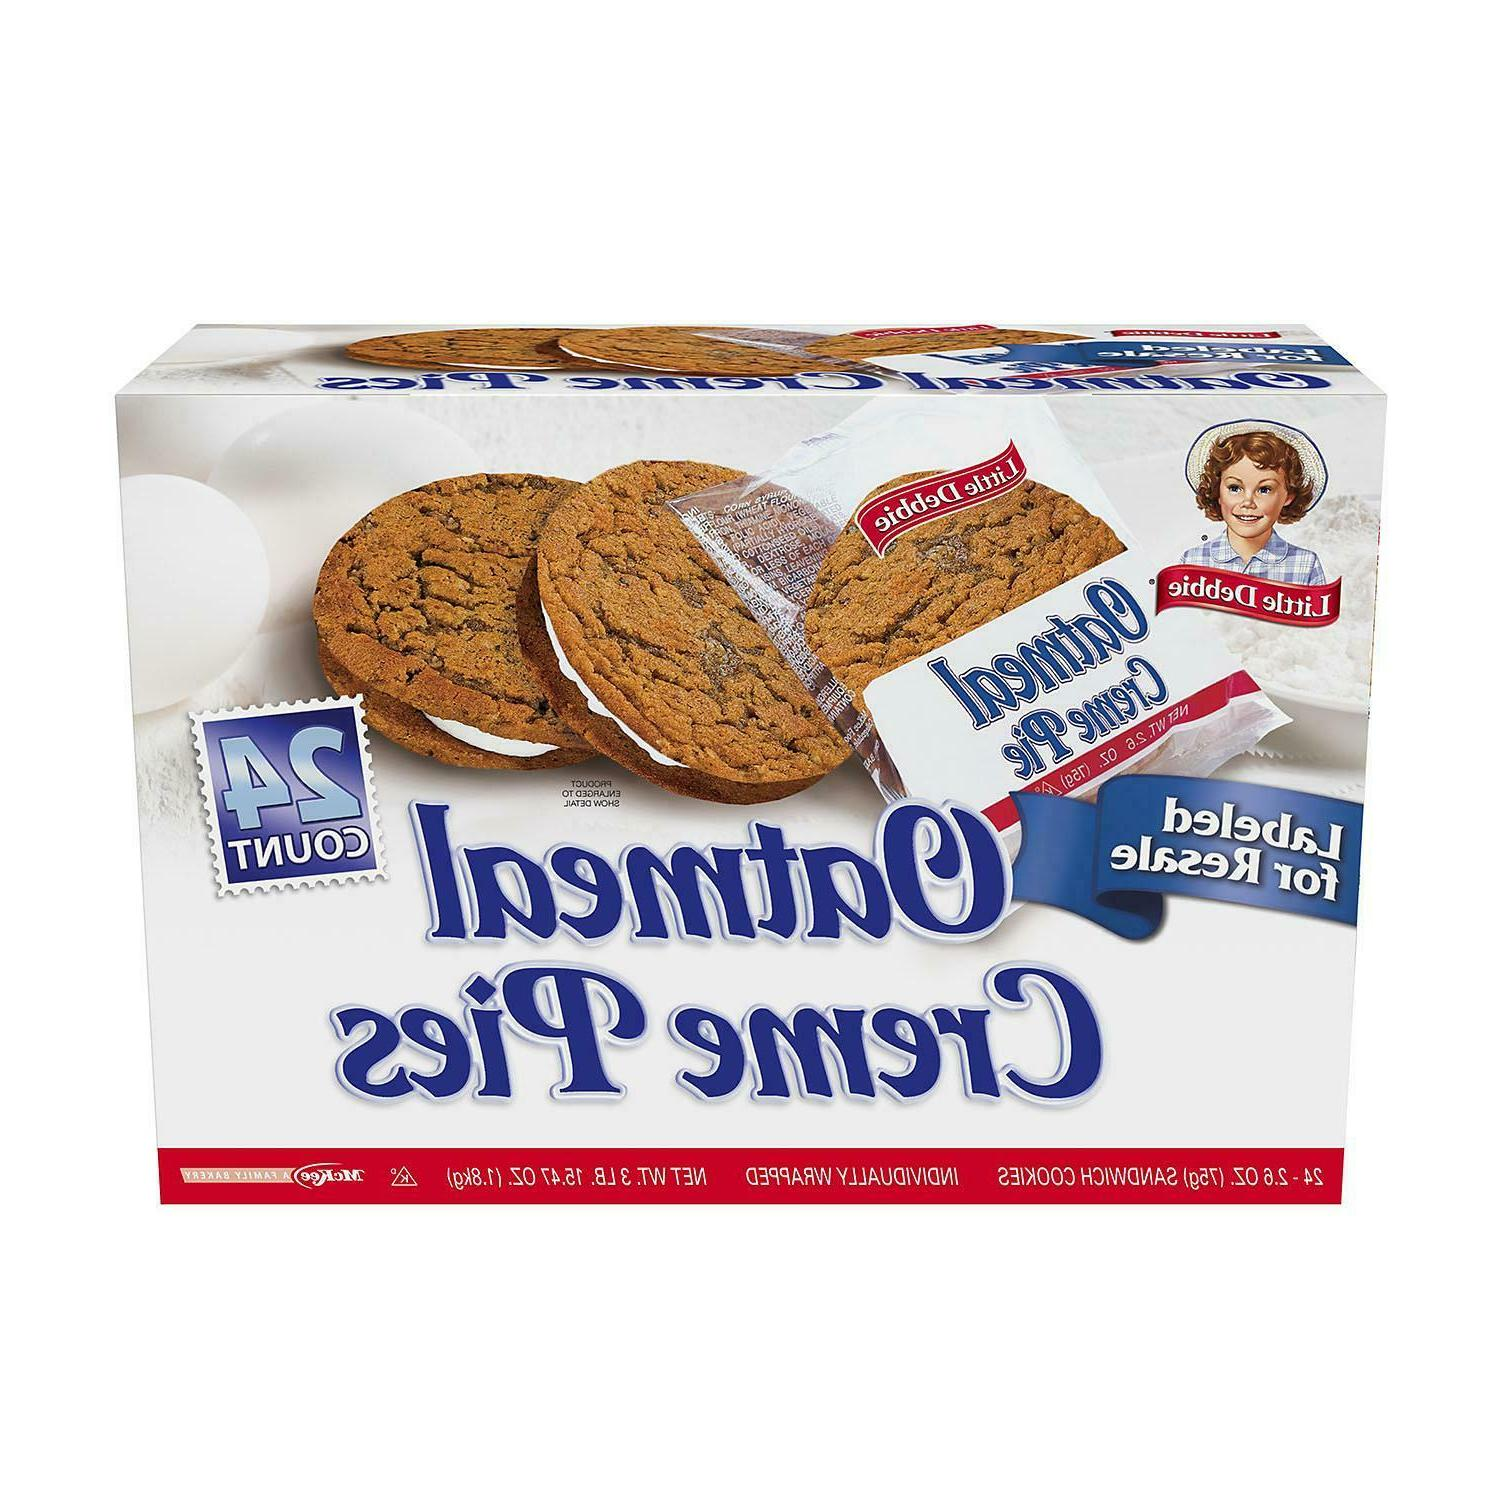 oatmeal creme pies individually wrapped 24 ct